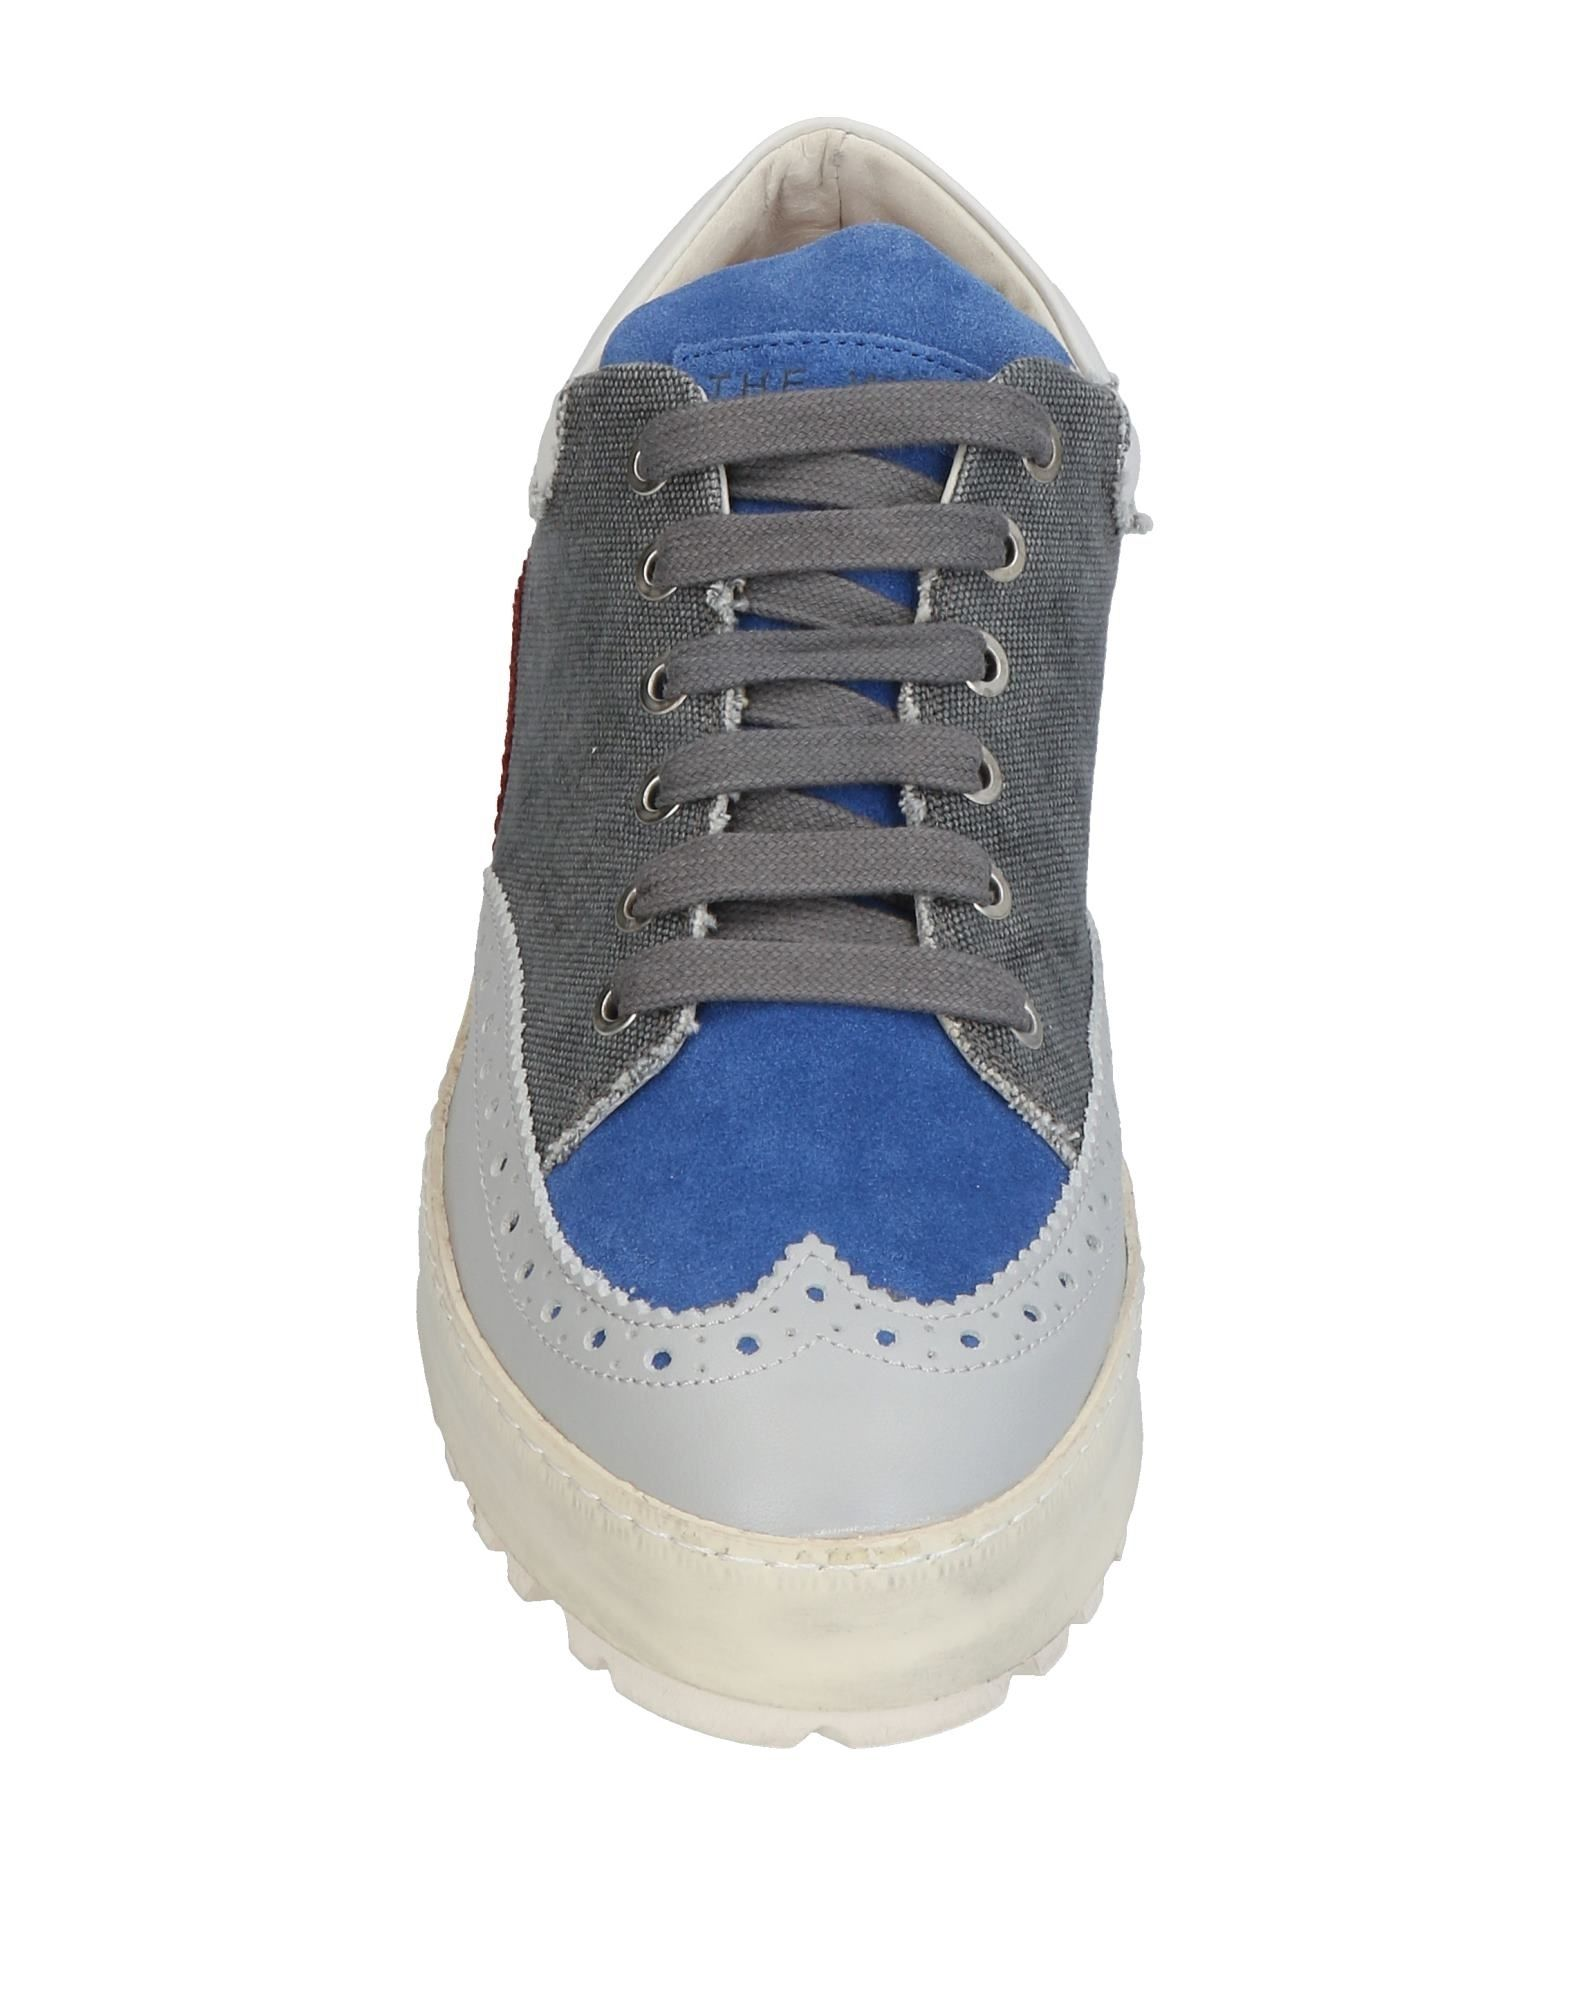 The Willa Sneakers Herren  11435295RU Neue Neue Neue Schuhe 0148db